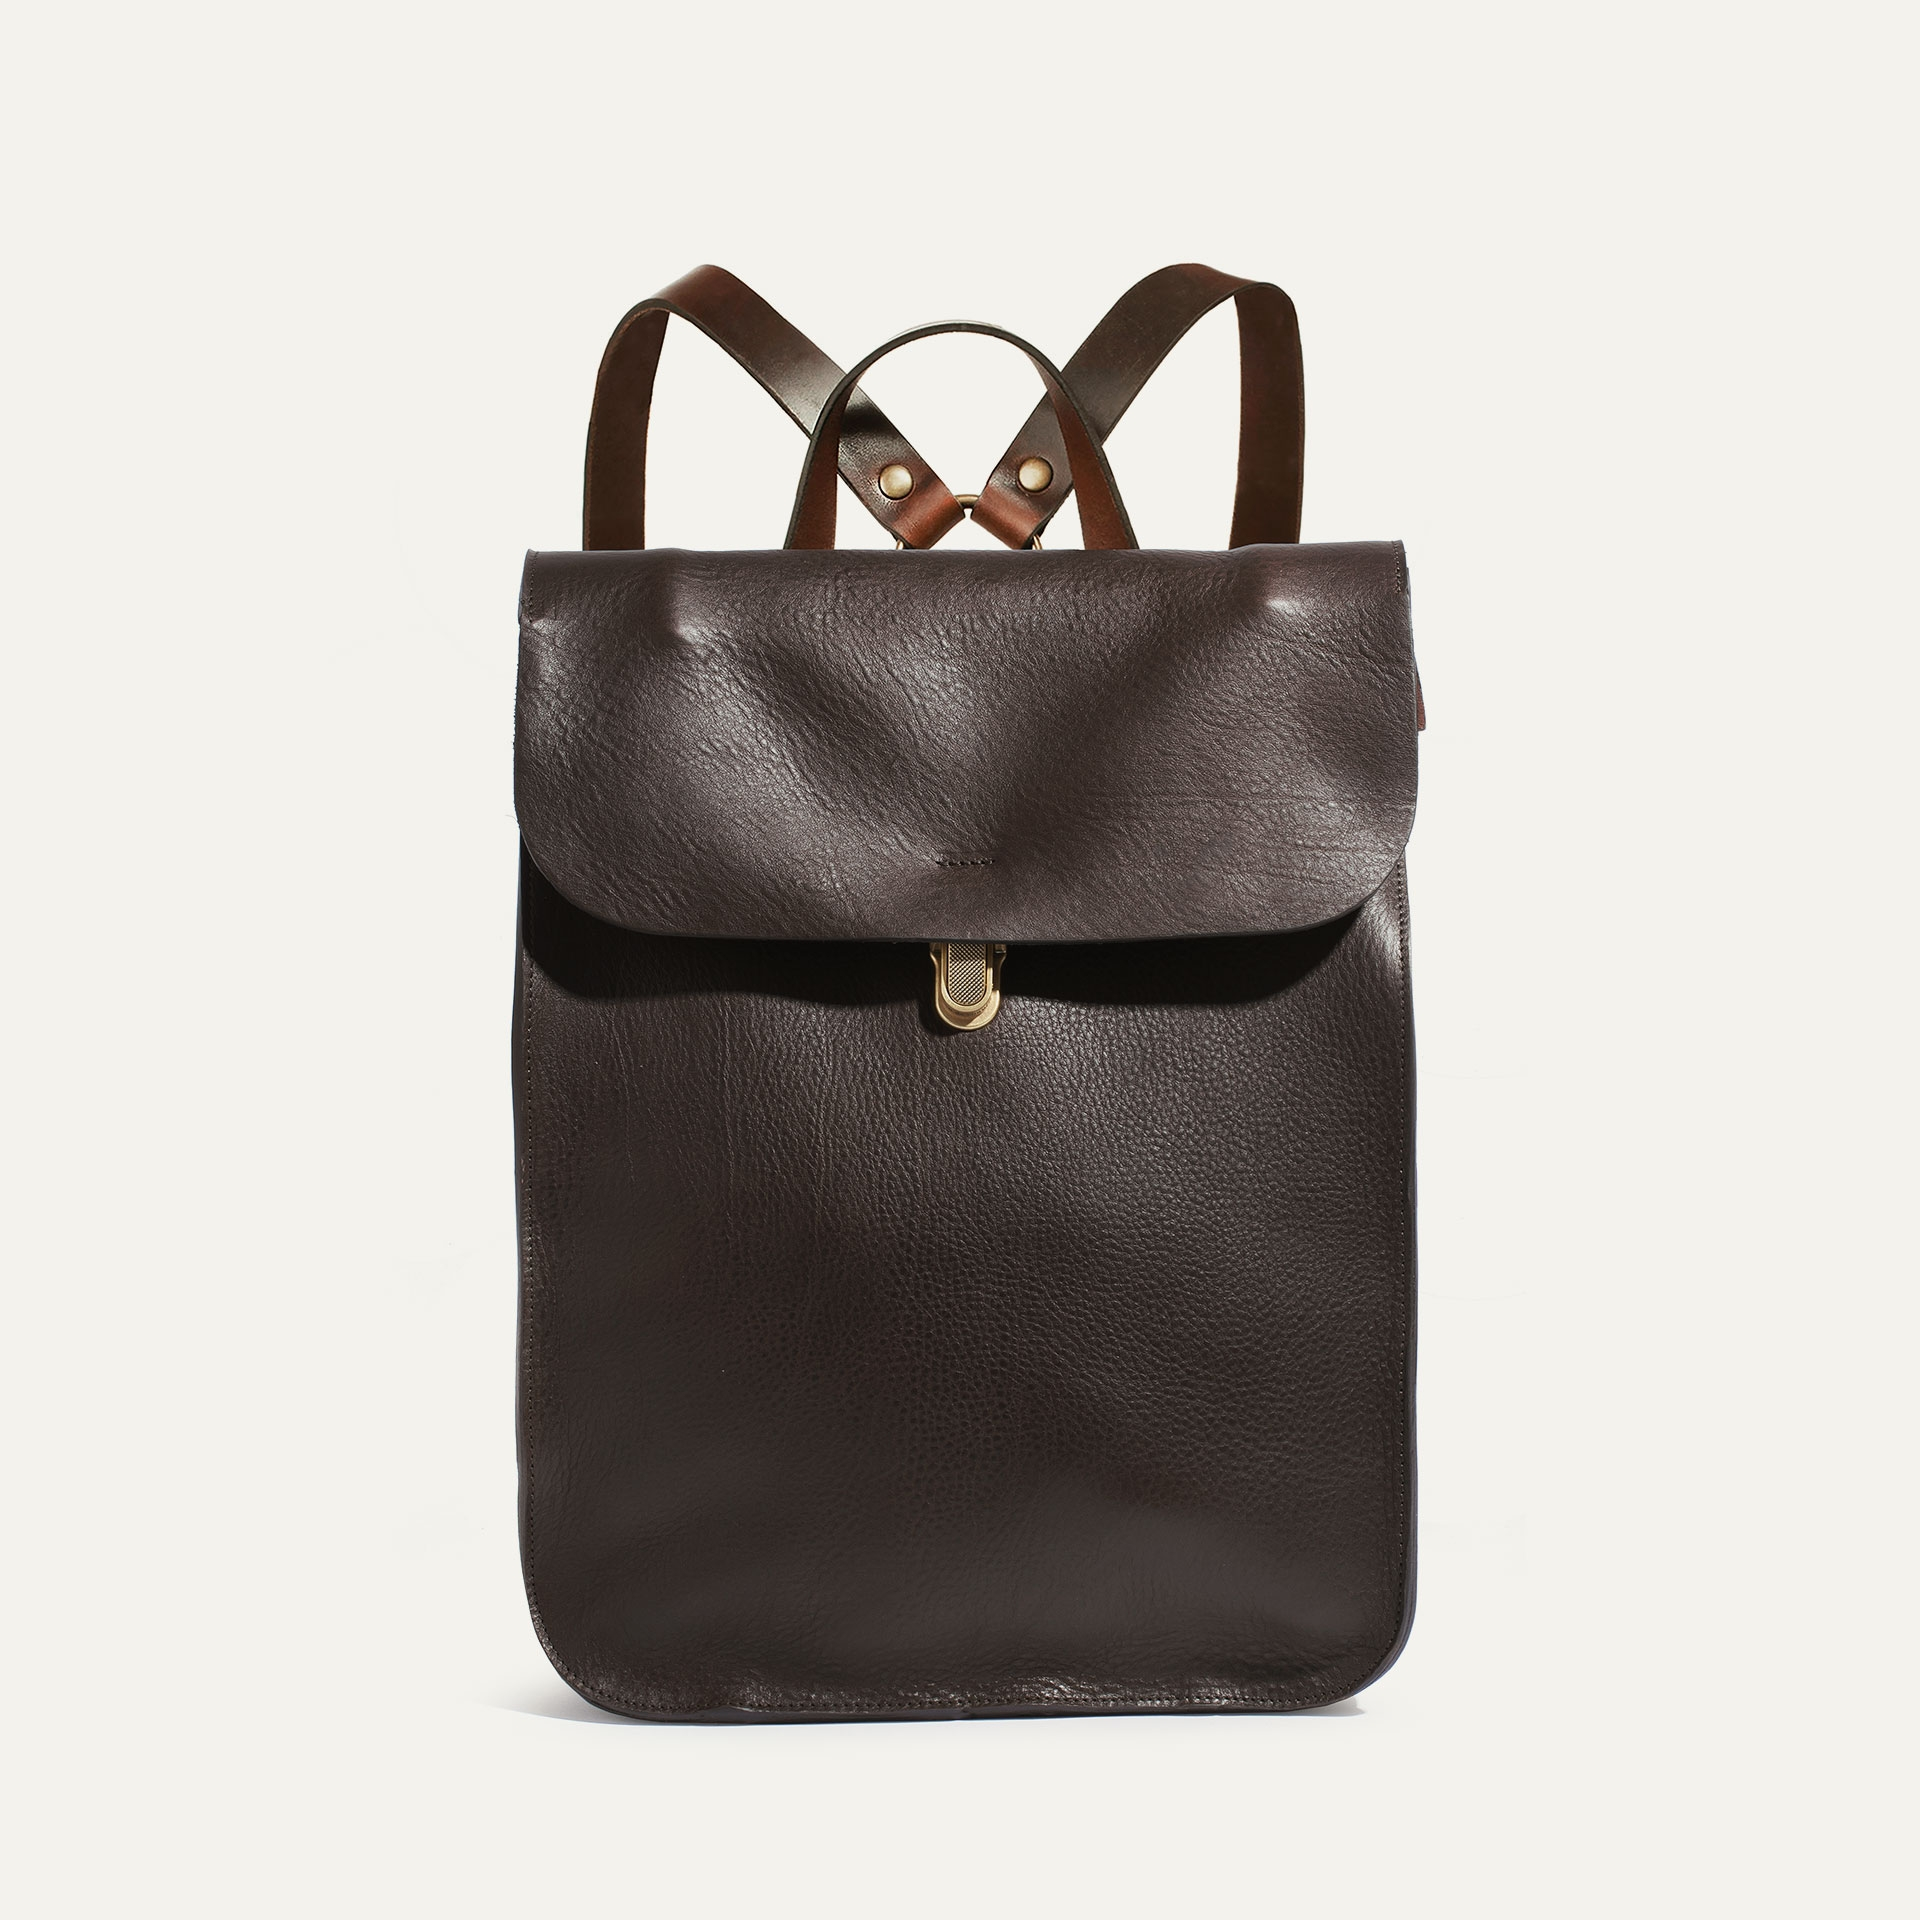 Puncho leather backpack - Dark Brown / E Pure (image n°1)